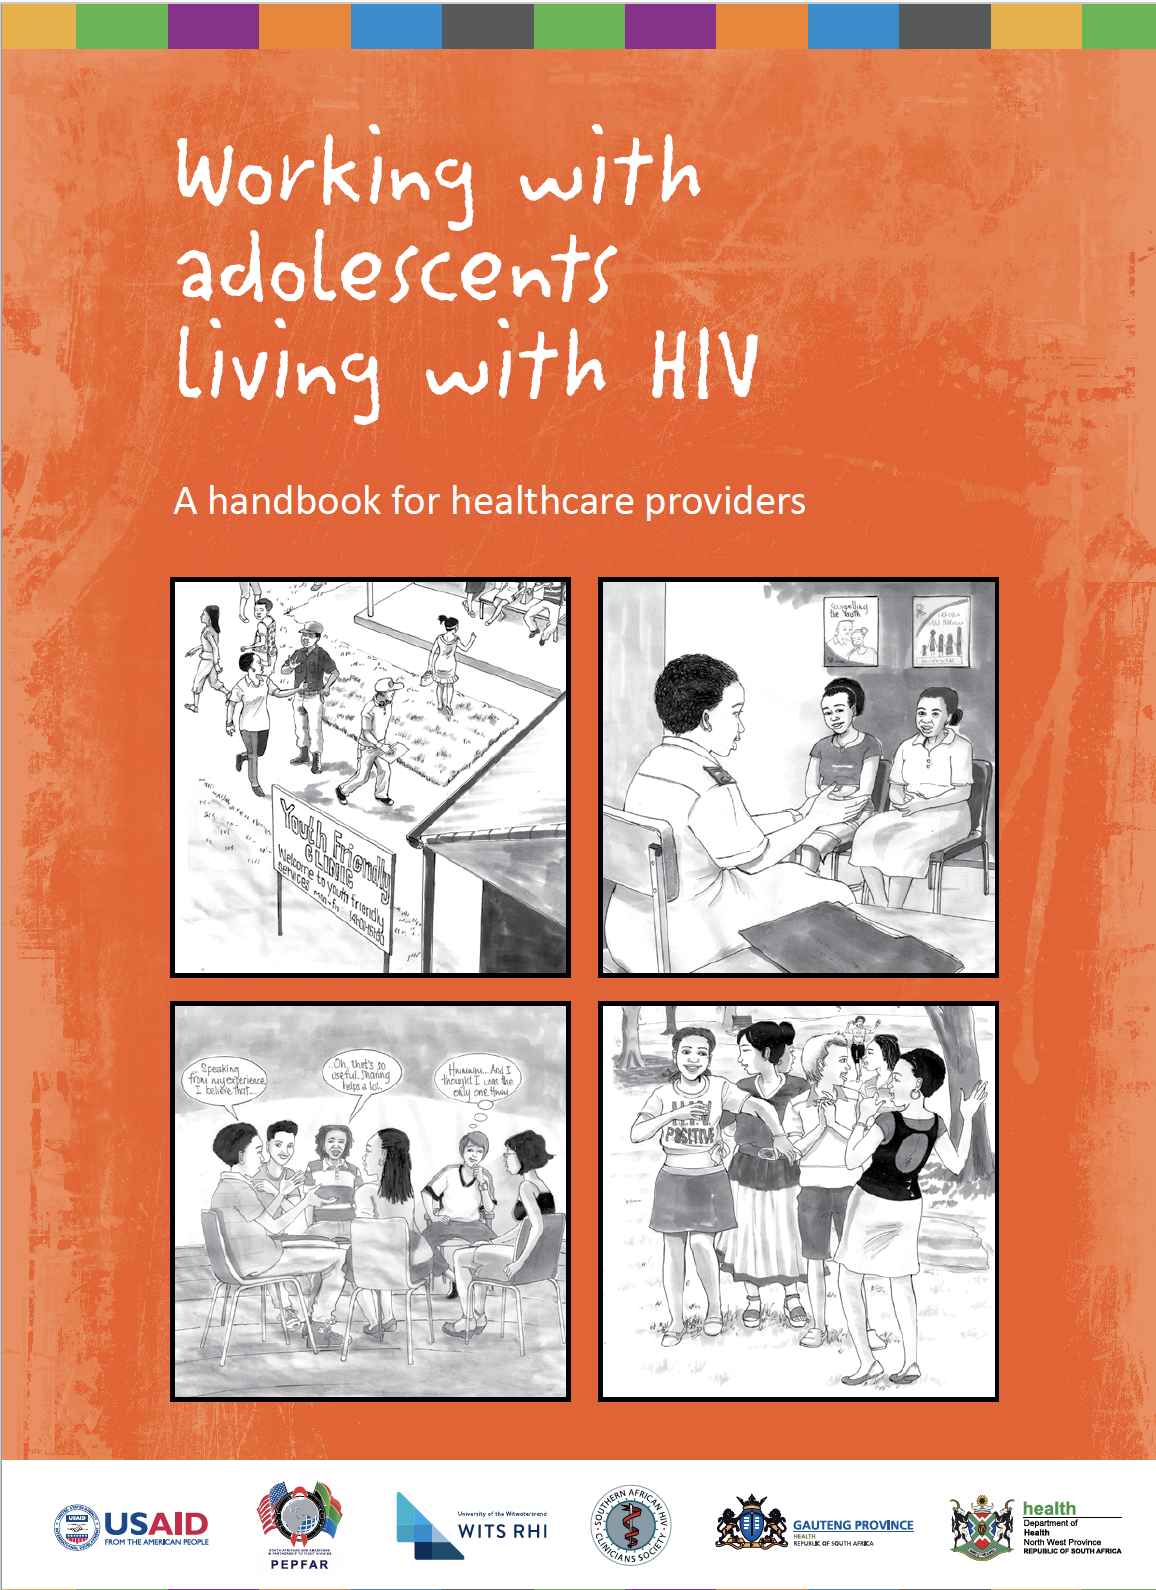 Working with adolescents living with HIV: A handbook for healthcare providers